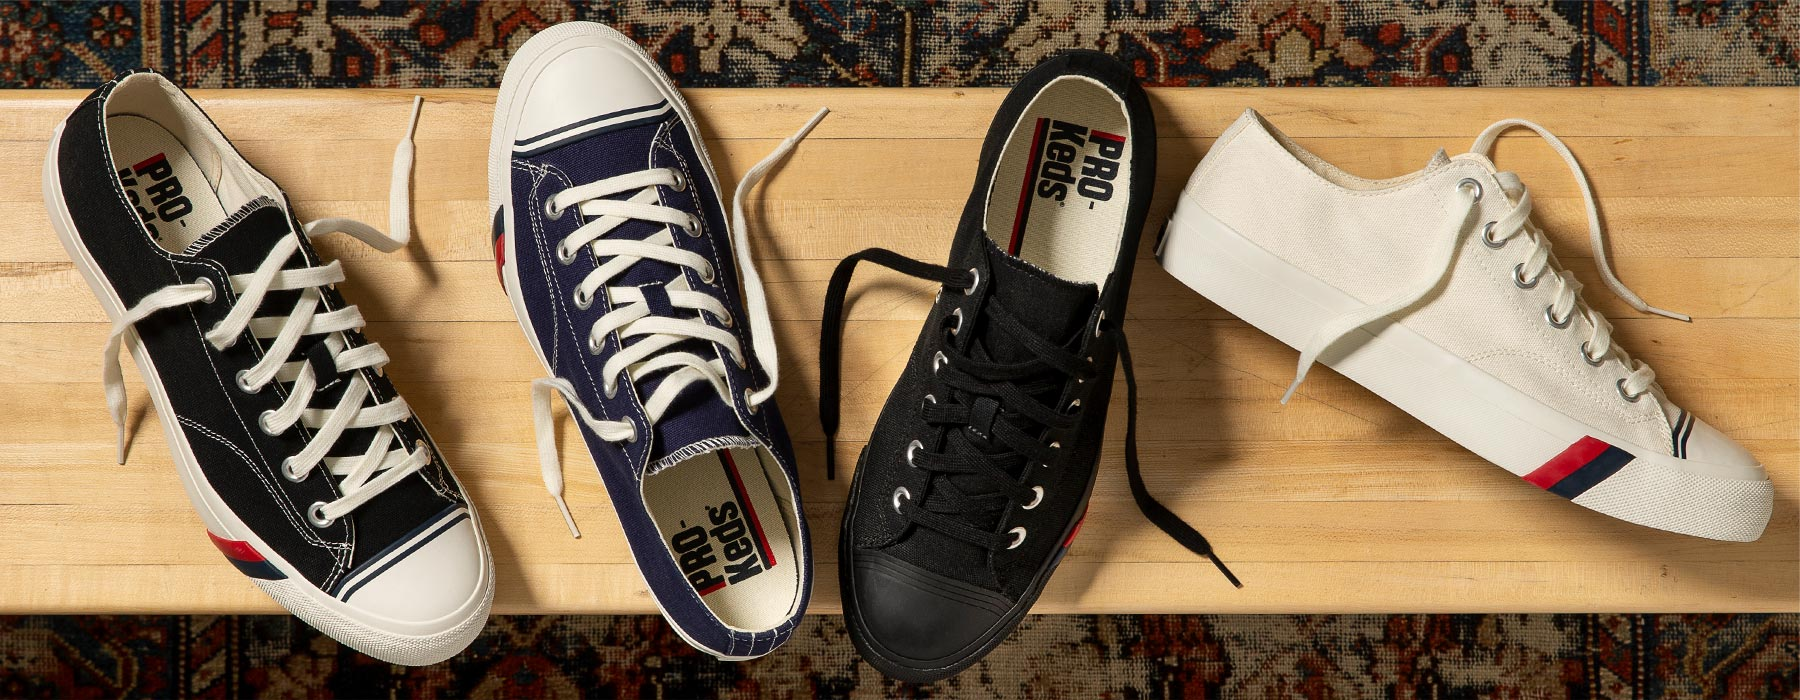 Four Pro-Keds shoes in a variety of colors sitting on a wooden bench.